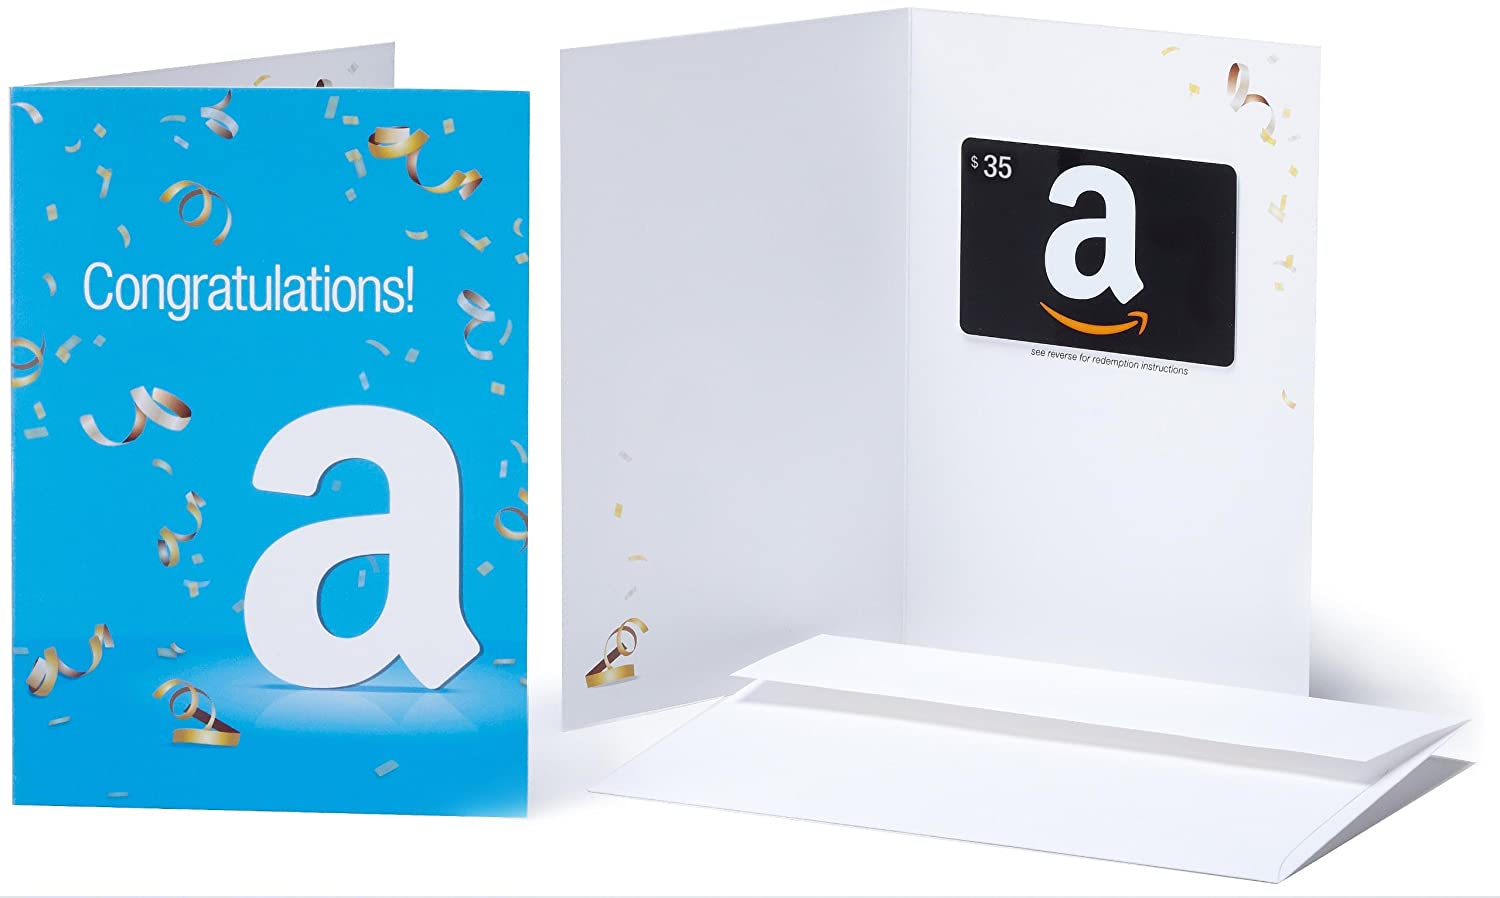 Amazon 35 Gift Card In A Greeting Congratulations Design Cards